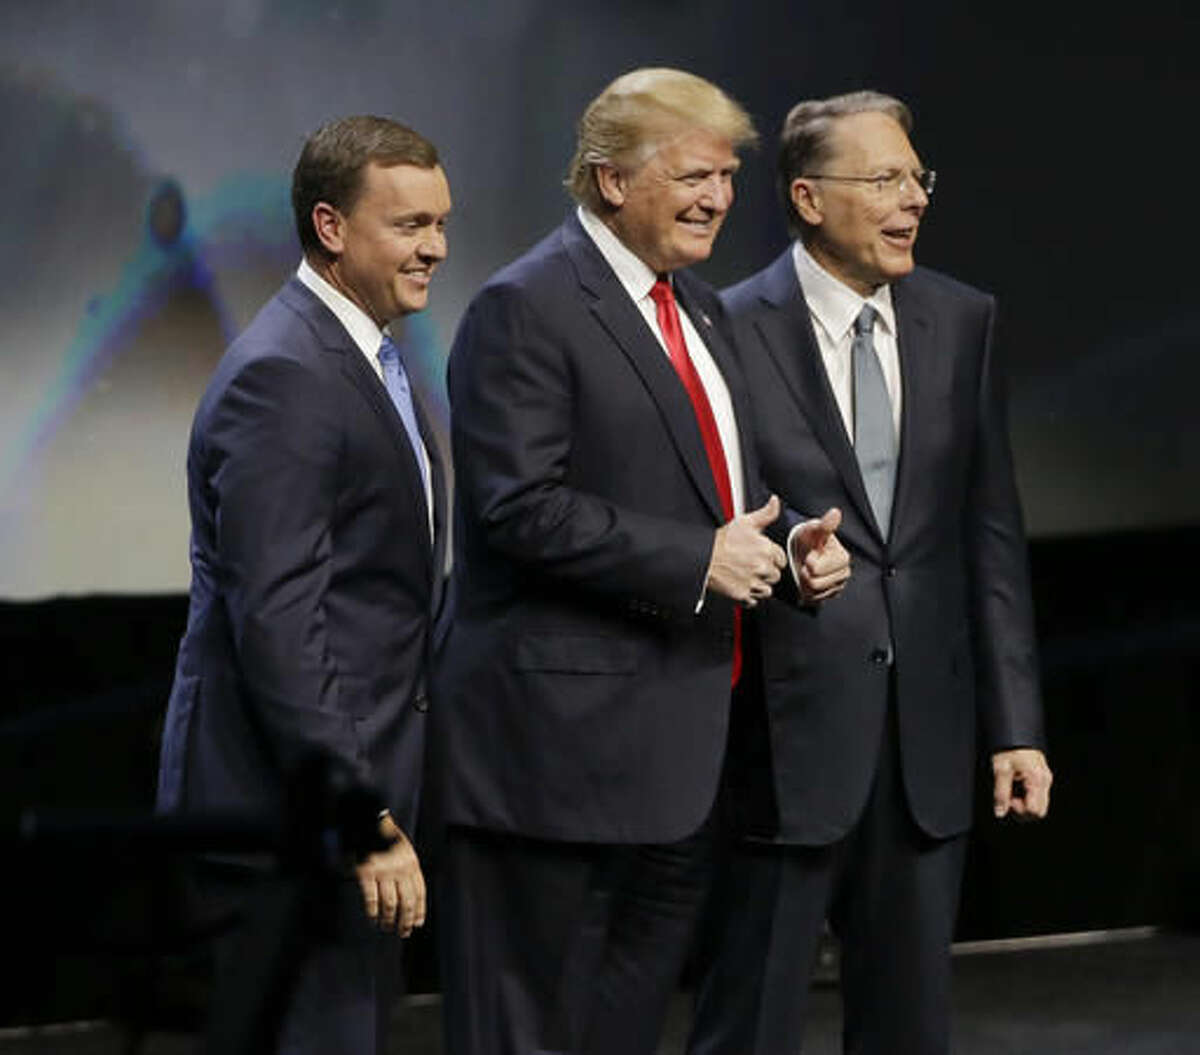 FILE - In this May 20, 2016, file photo, then-Republican presidential candidate Donald Trump is introduced by National Rifle Association executive director Chris W. Cox , left, and NRA executive vice president Wayne LaPierre as he takes the stage to speak at the NRA convention in Louisville, Ky. Firearms enthusiasts who embraced Donald Trump's presidential campaign and his full-throated support of the Second Amendment are expecting a sweeping expansion of gun rights under his administration and a Congress firmly controlled by Republicans. (AP Photo/Mark Humphrey, File)